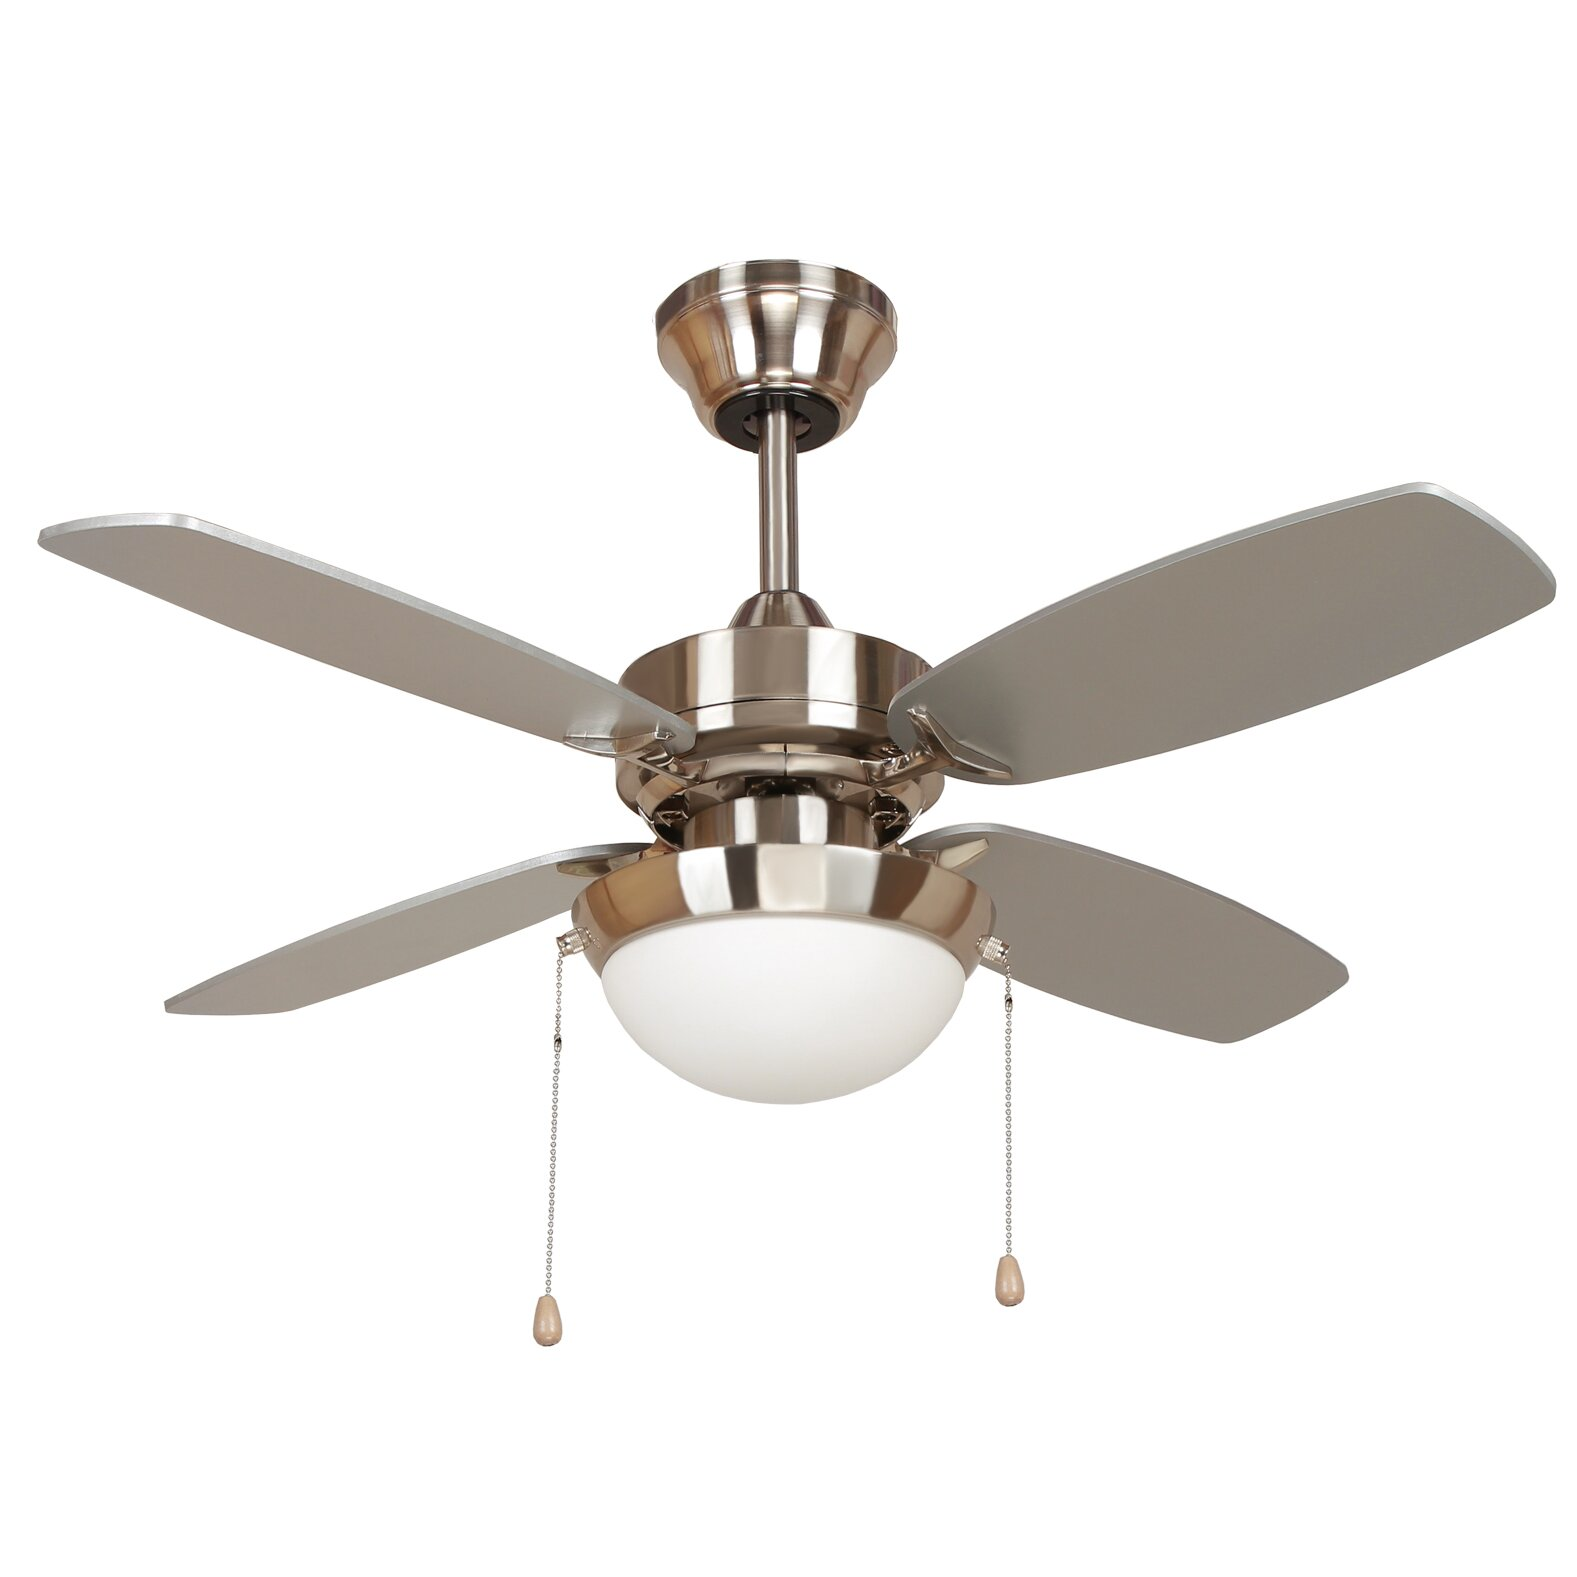 Yosemite home decor 36 ashley 4 blade ceiling fan for Home decorations fan